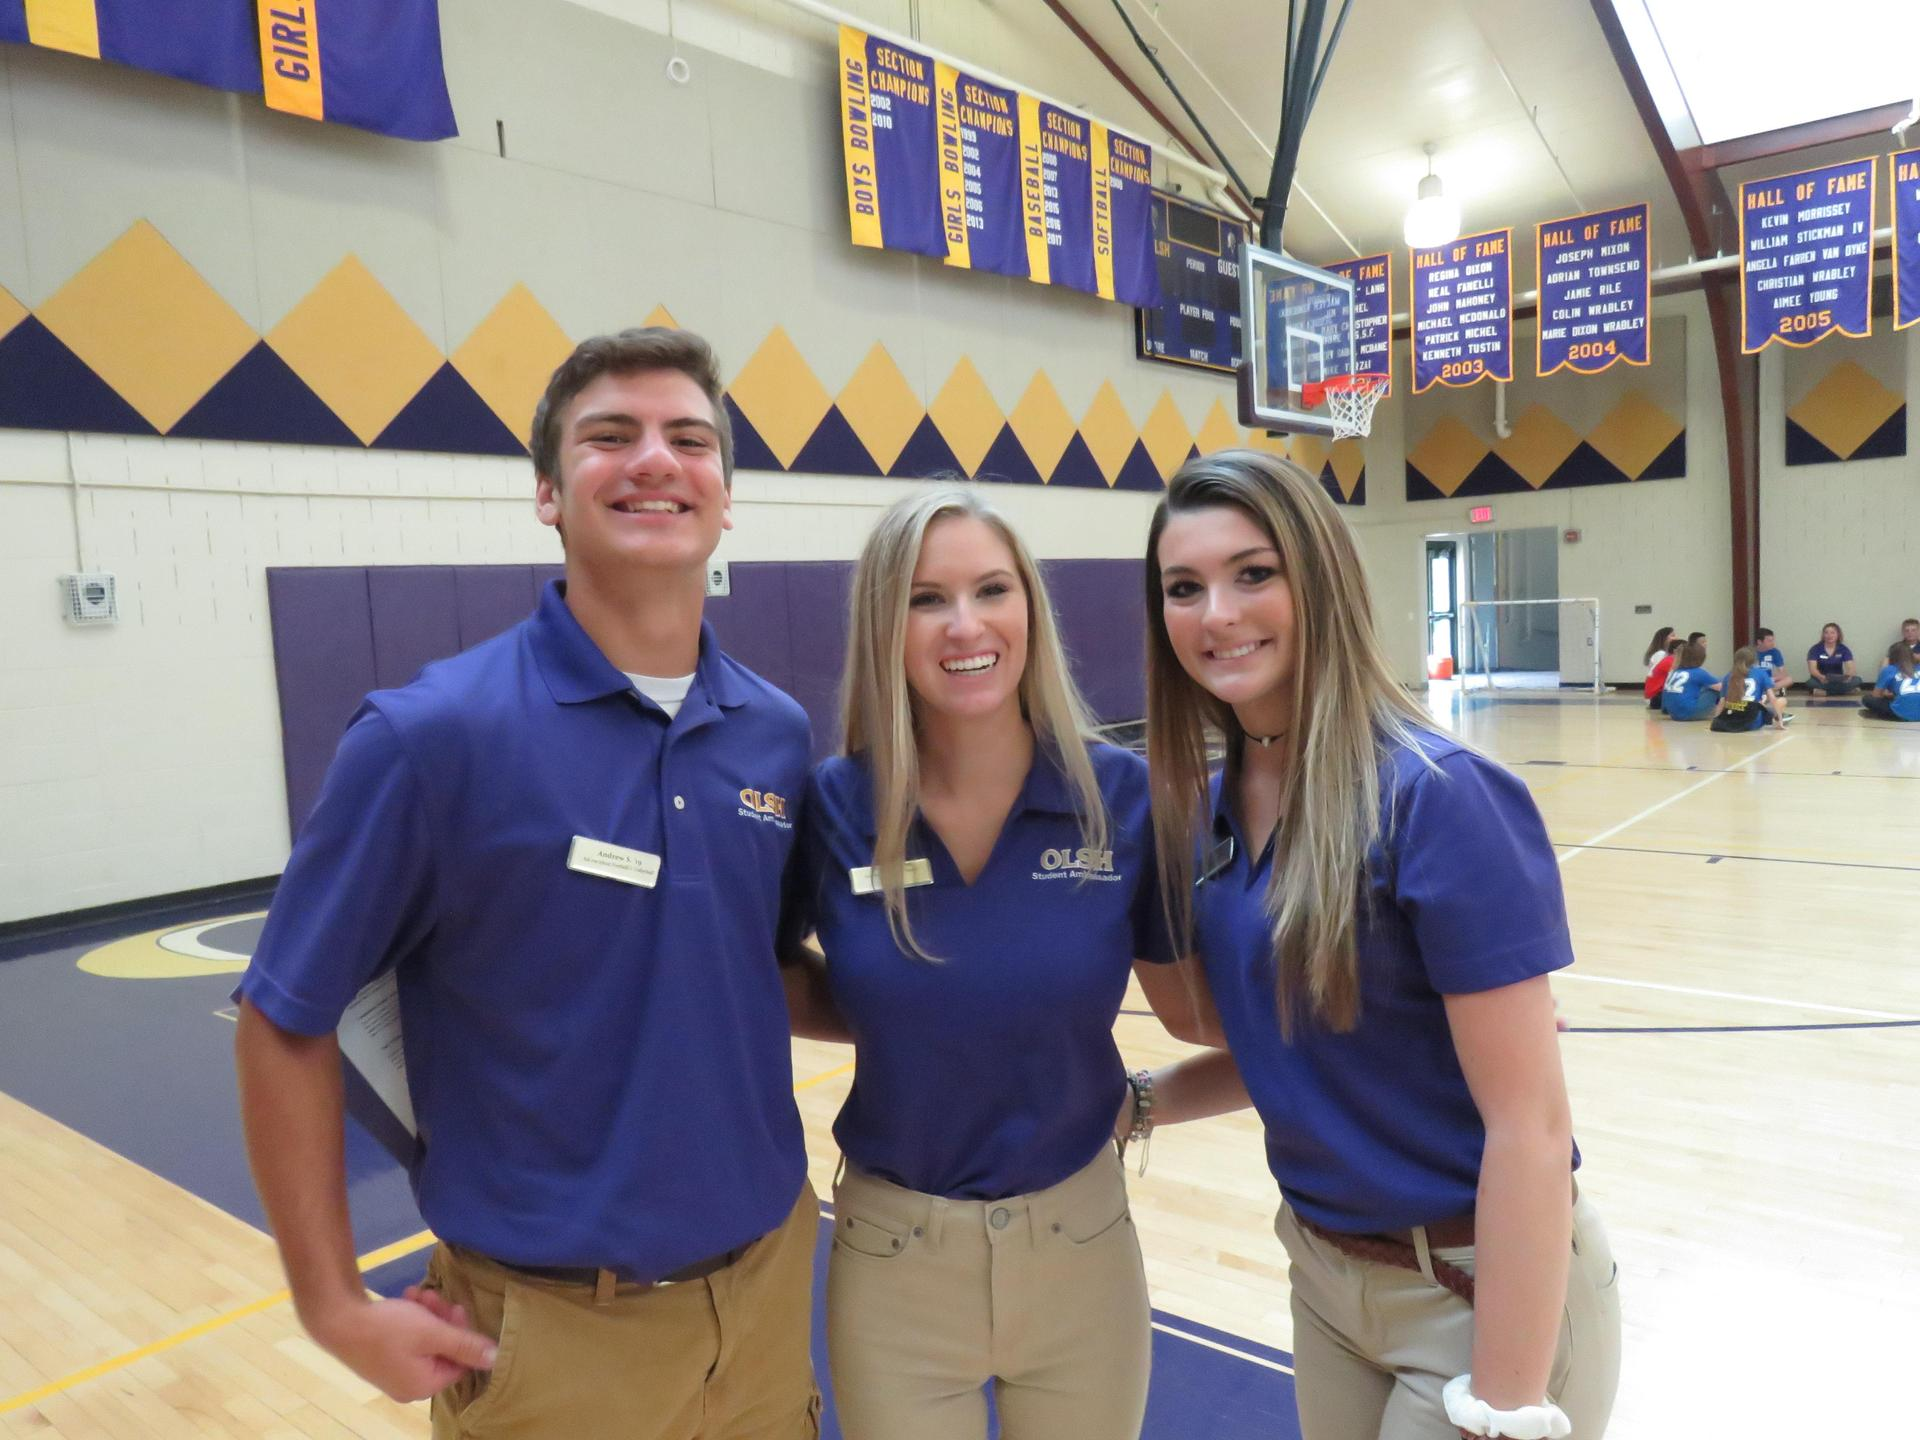 Maggie with Andrew and Mae at this year's Freshman Foundations Day event, helping to run activities for new freshmen.